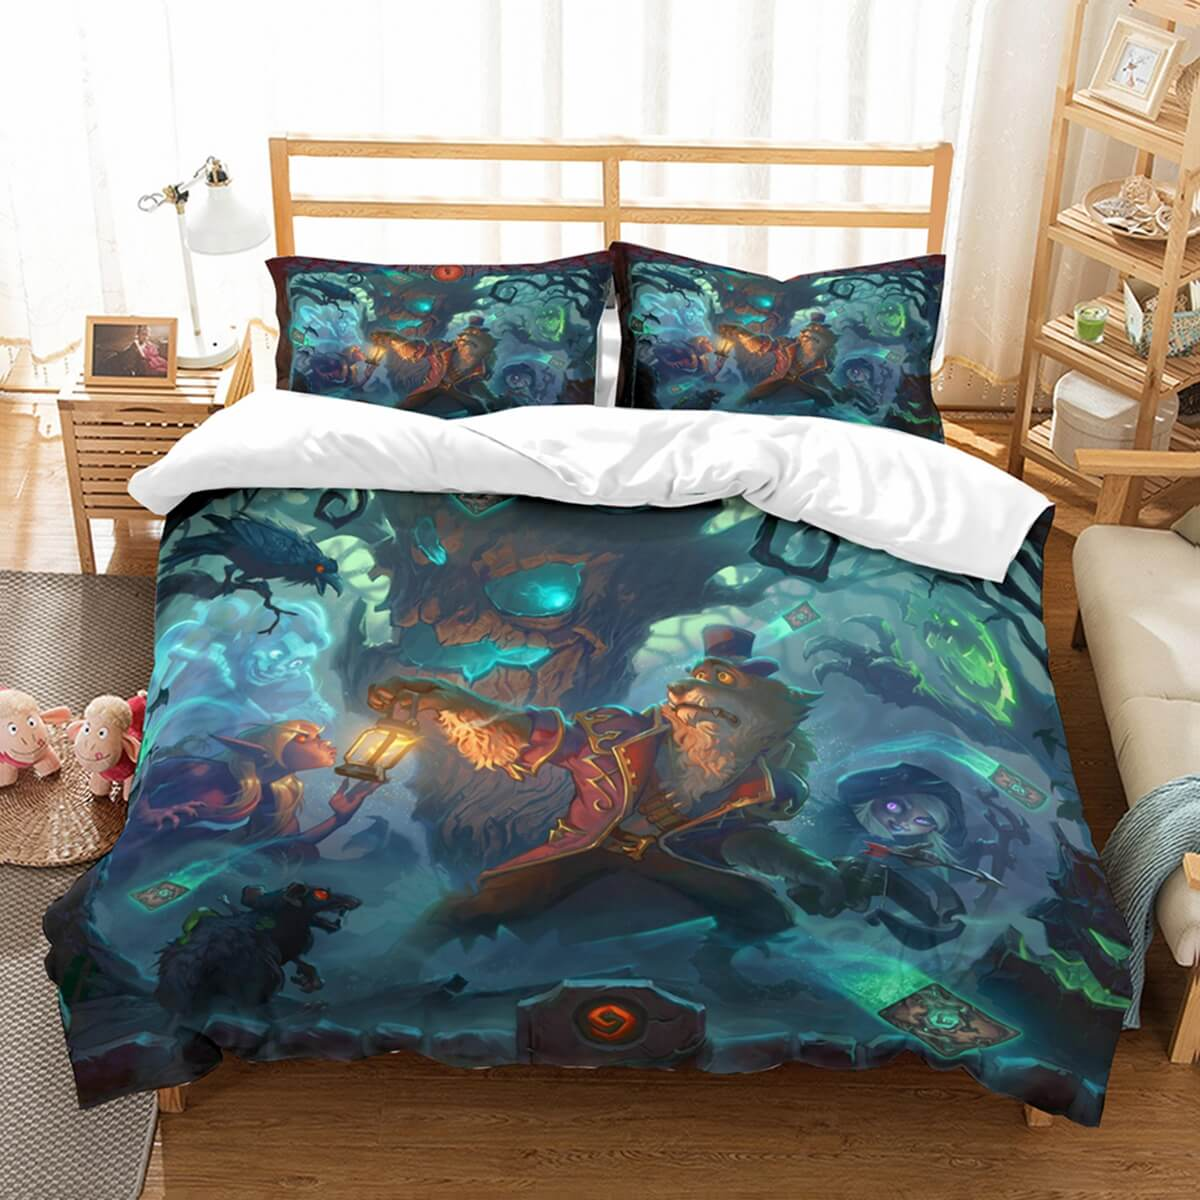 3D Customize Hearthstone The Witchwood Bedding Set Duvet Cover Set Bedroom Set Bedlinen